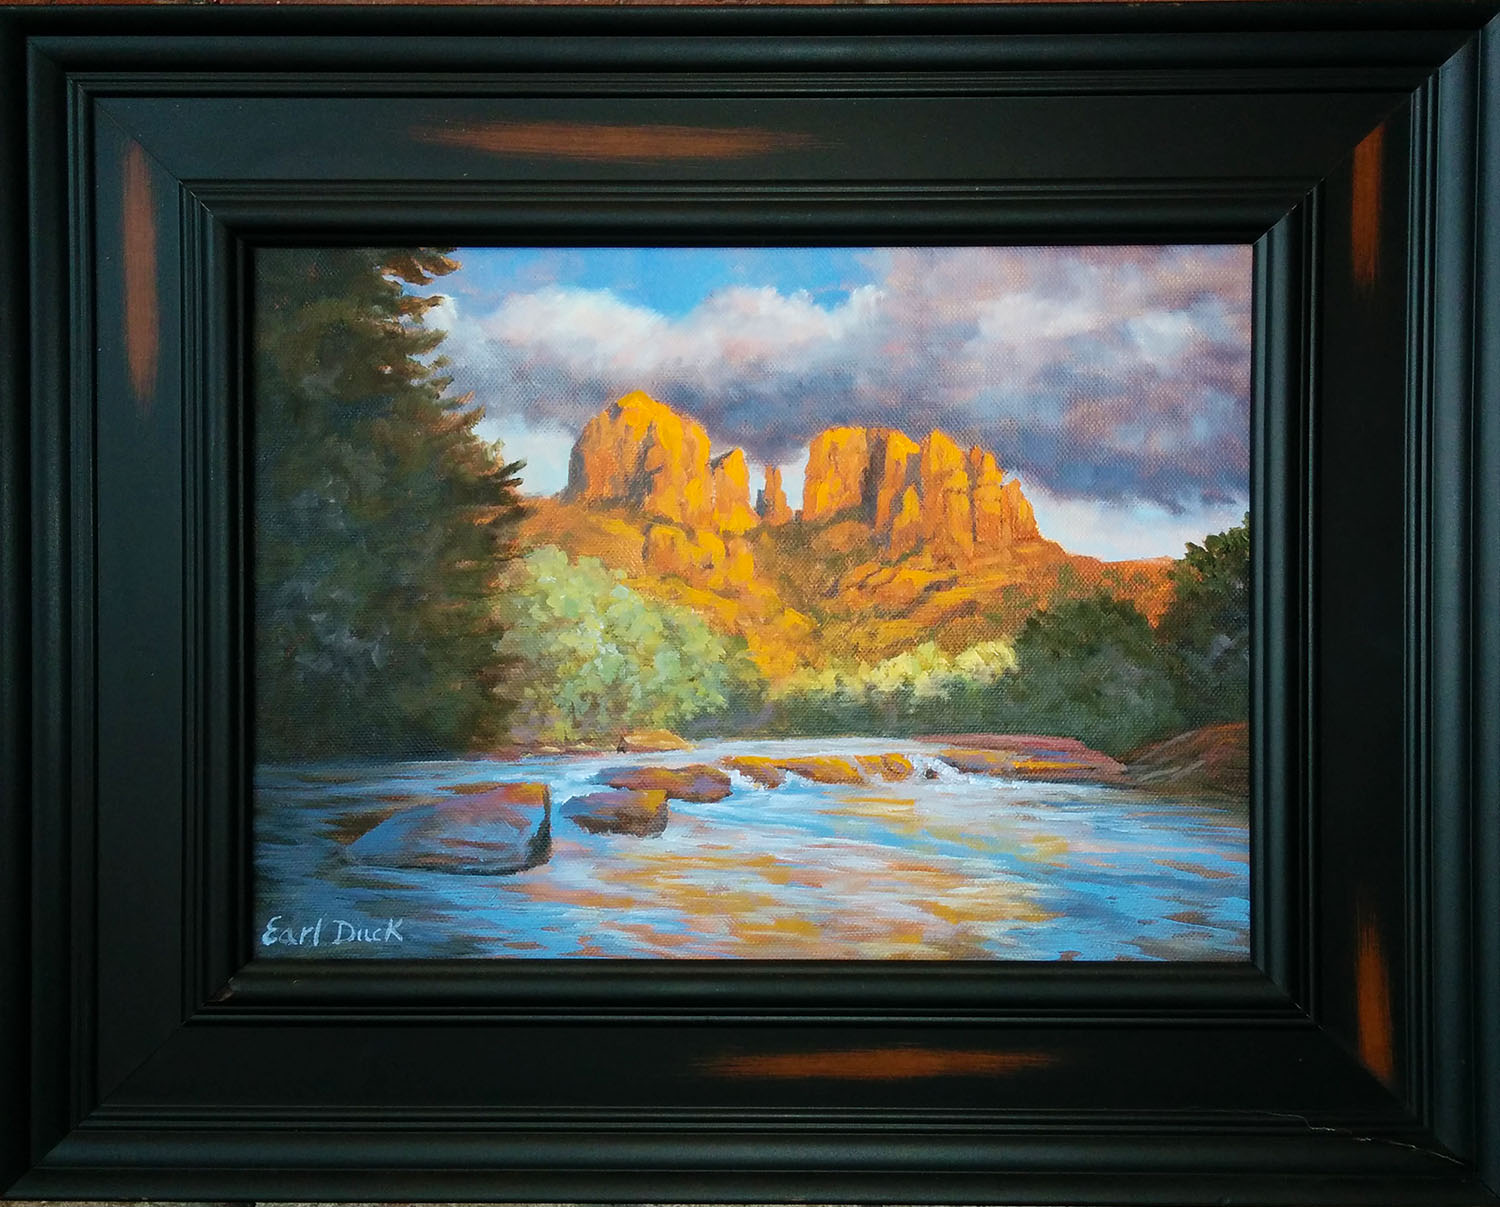 Cathedral Rock by Earl Duck